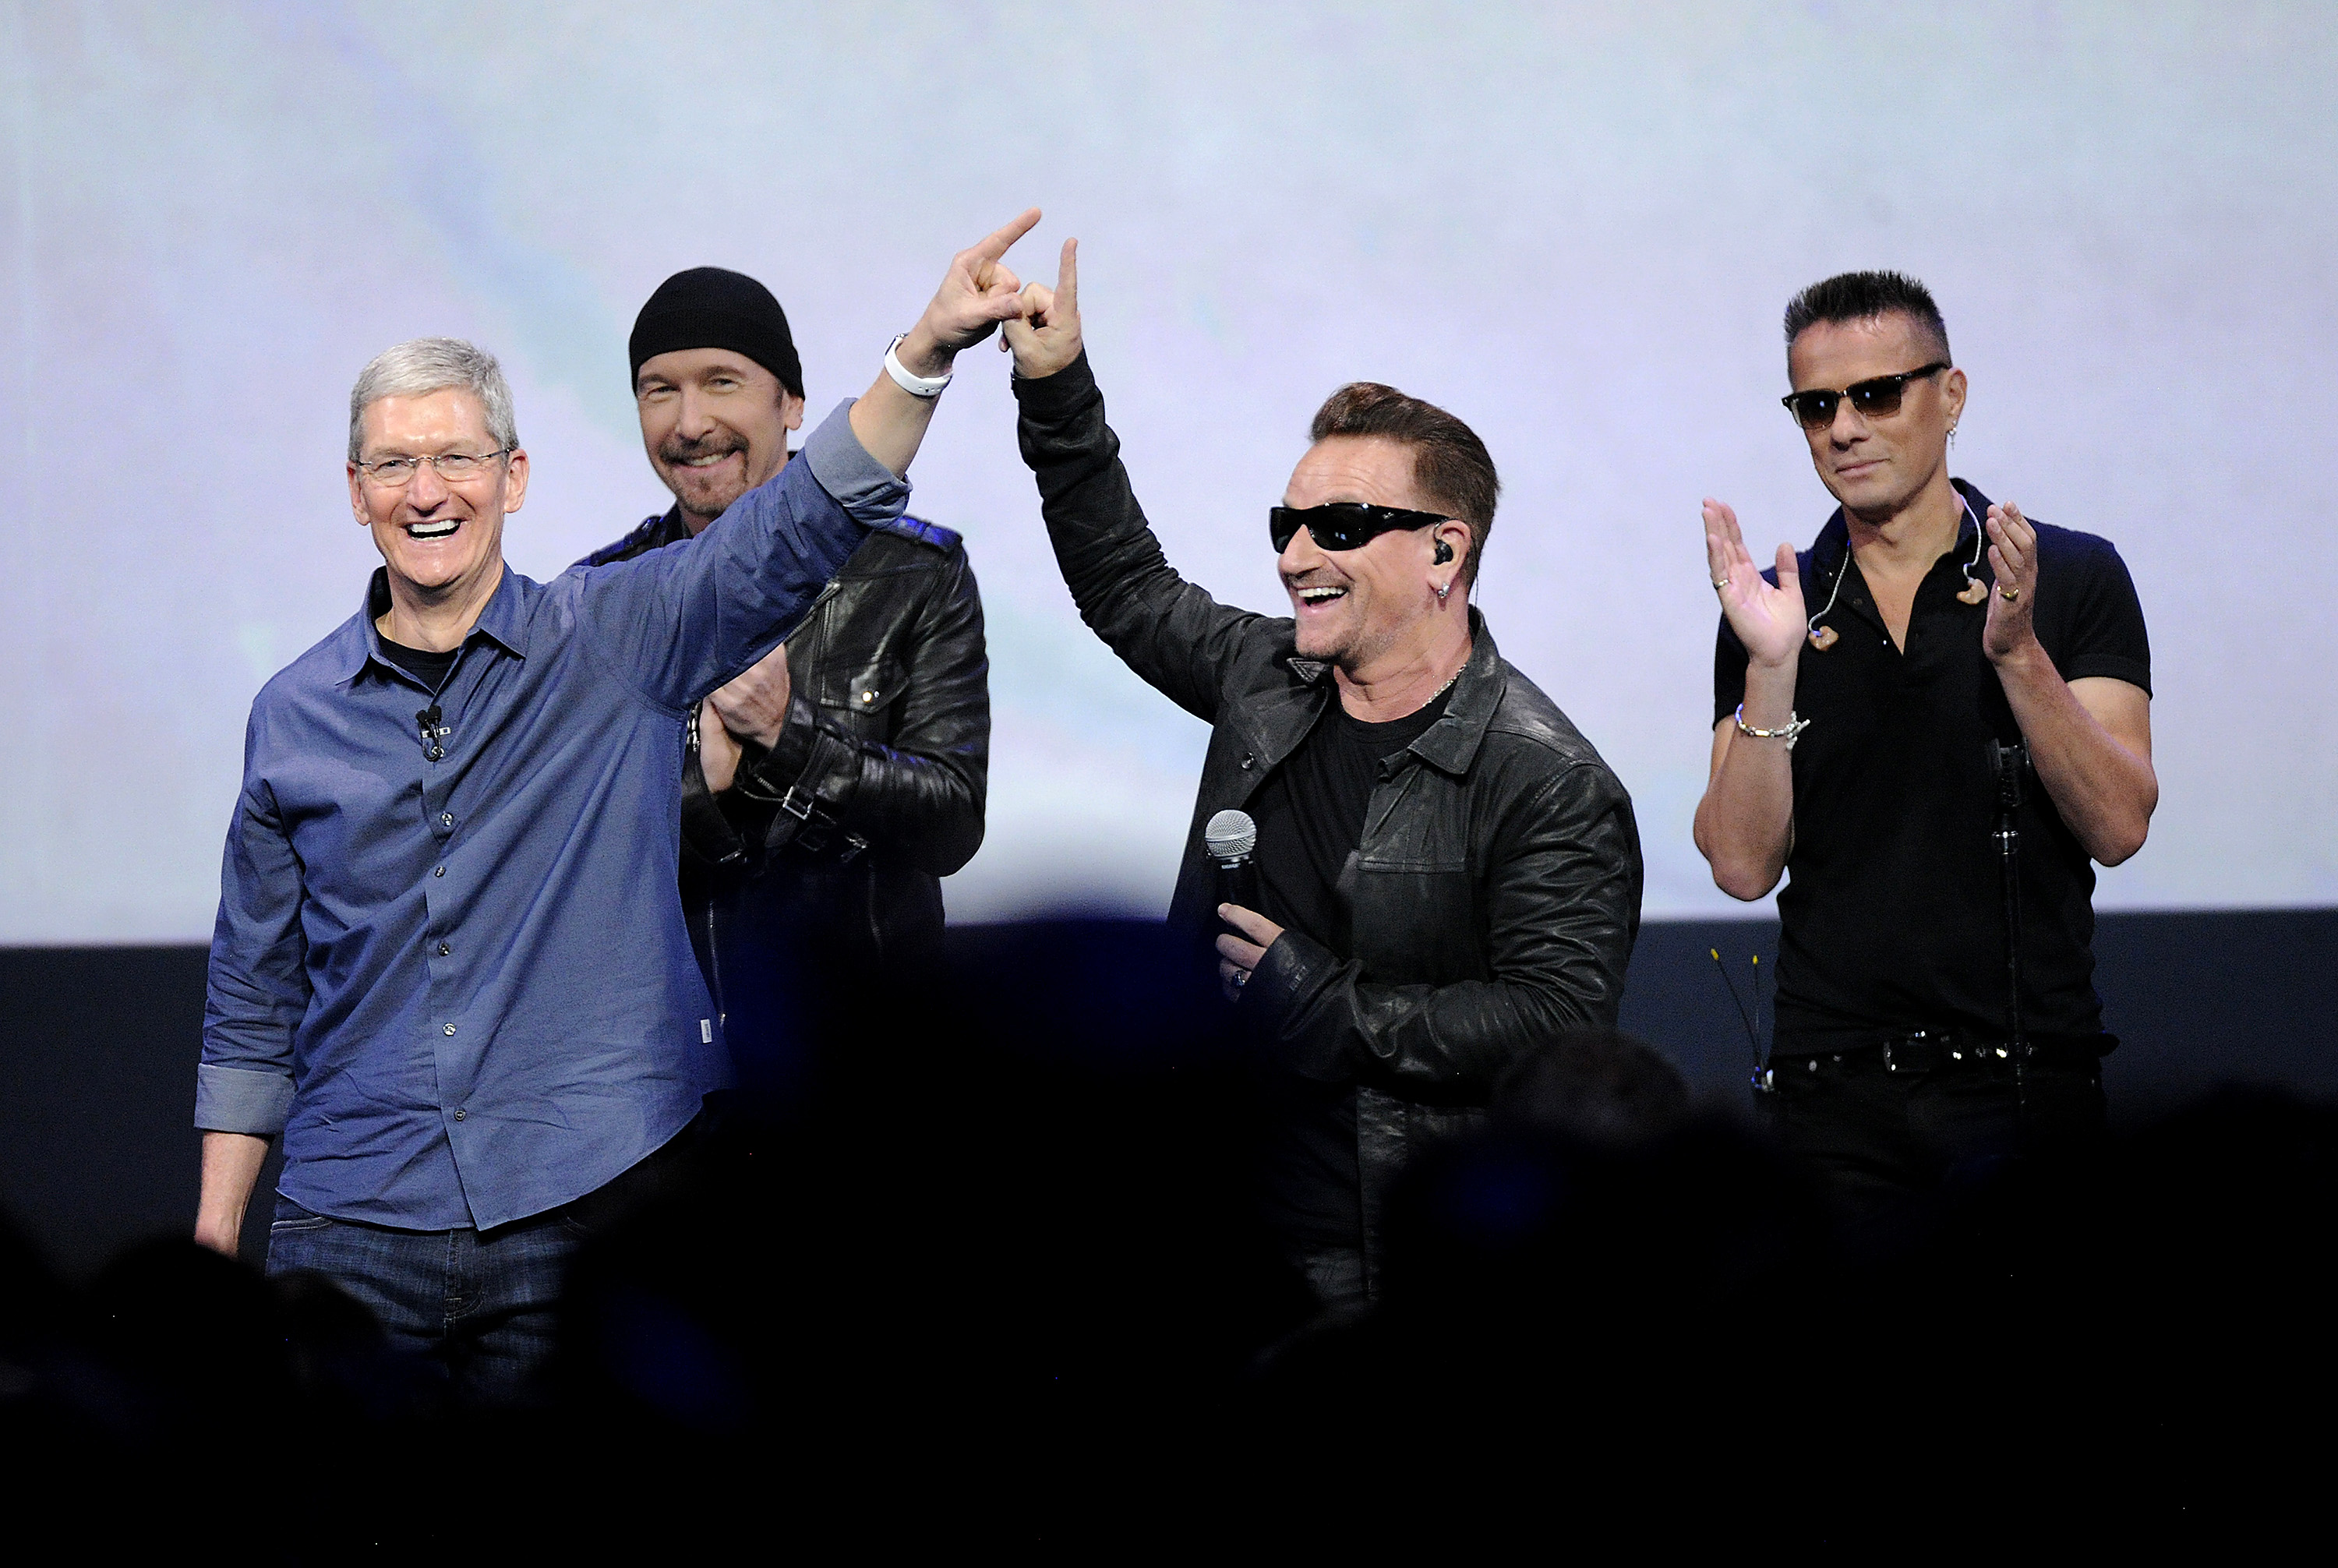 U2's free album cost Apple $100 million